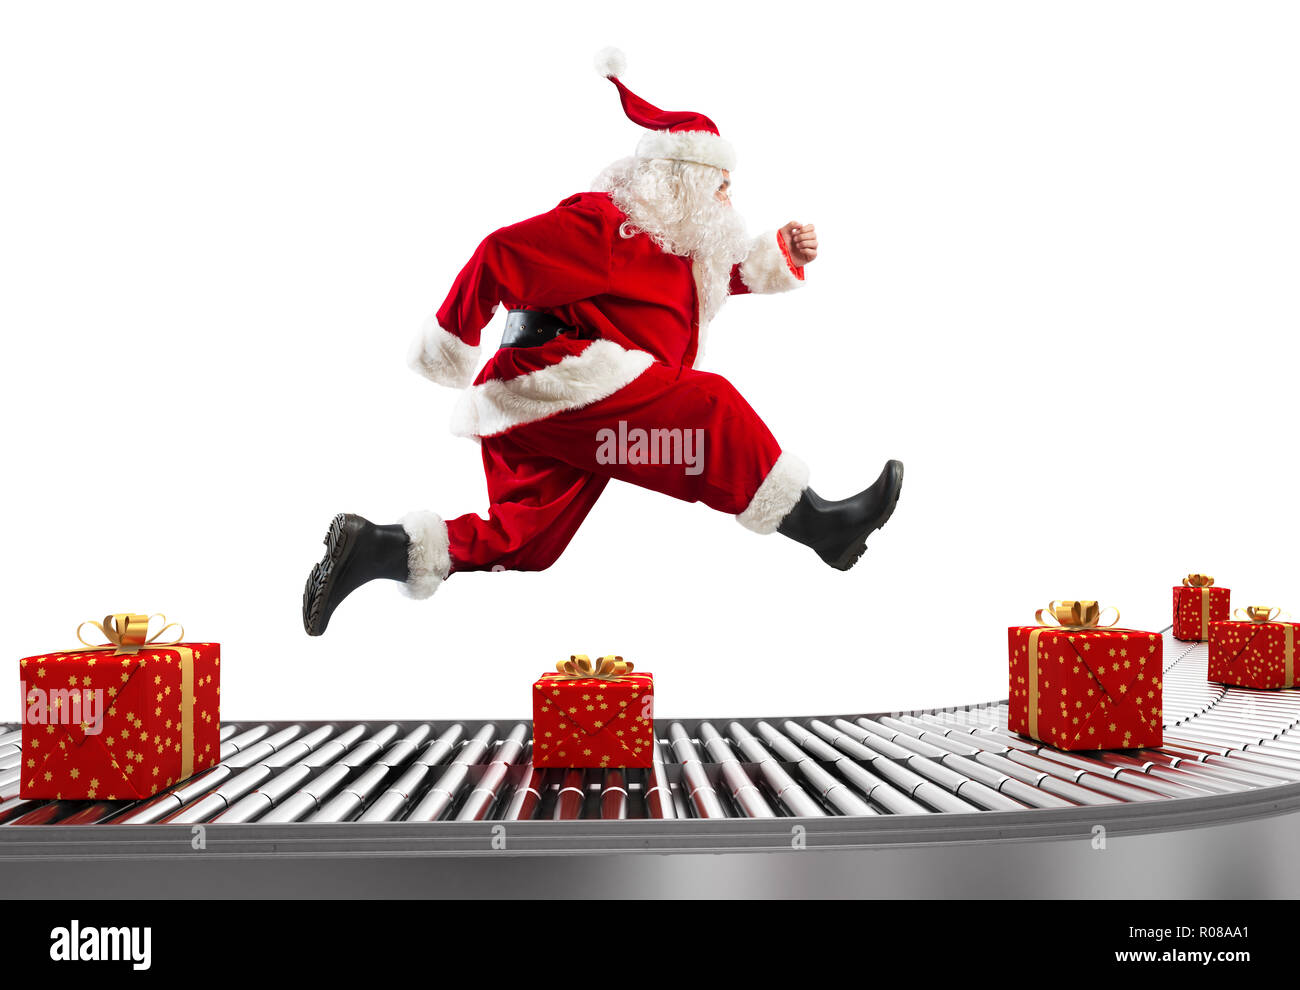 Santa Claus runs on the conveyor belt to arrange deliveries at Christmas time - Stock Image